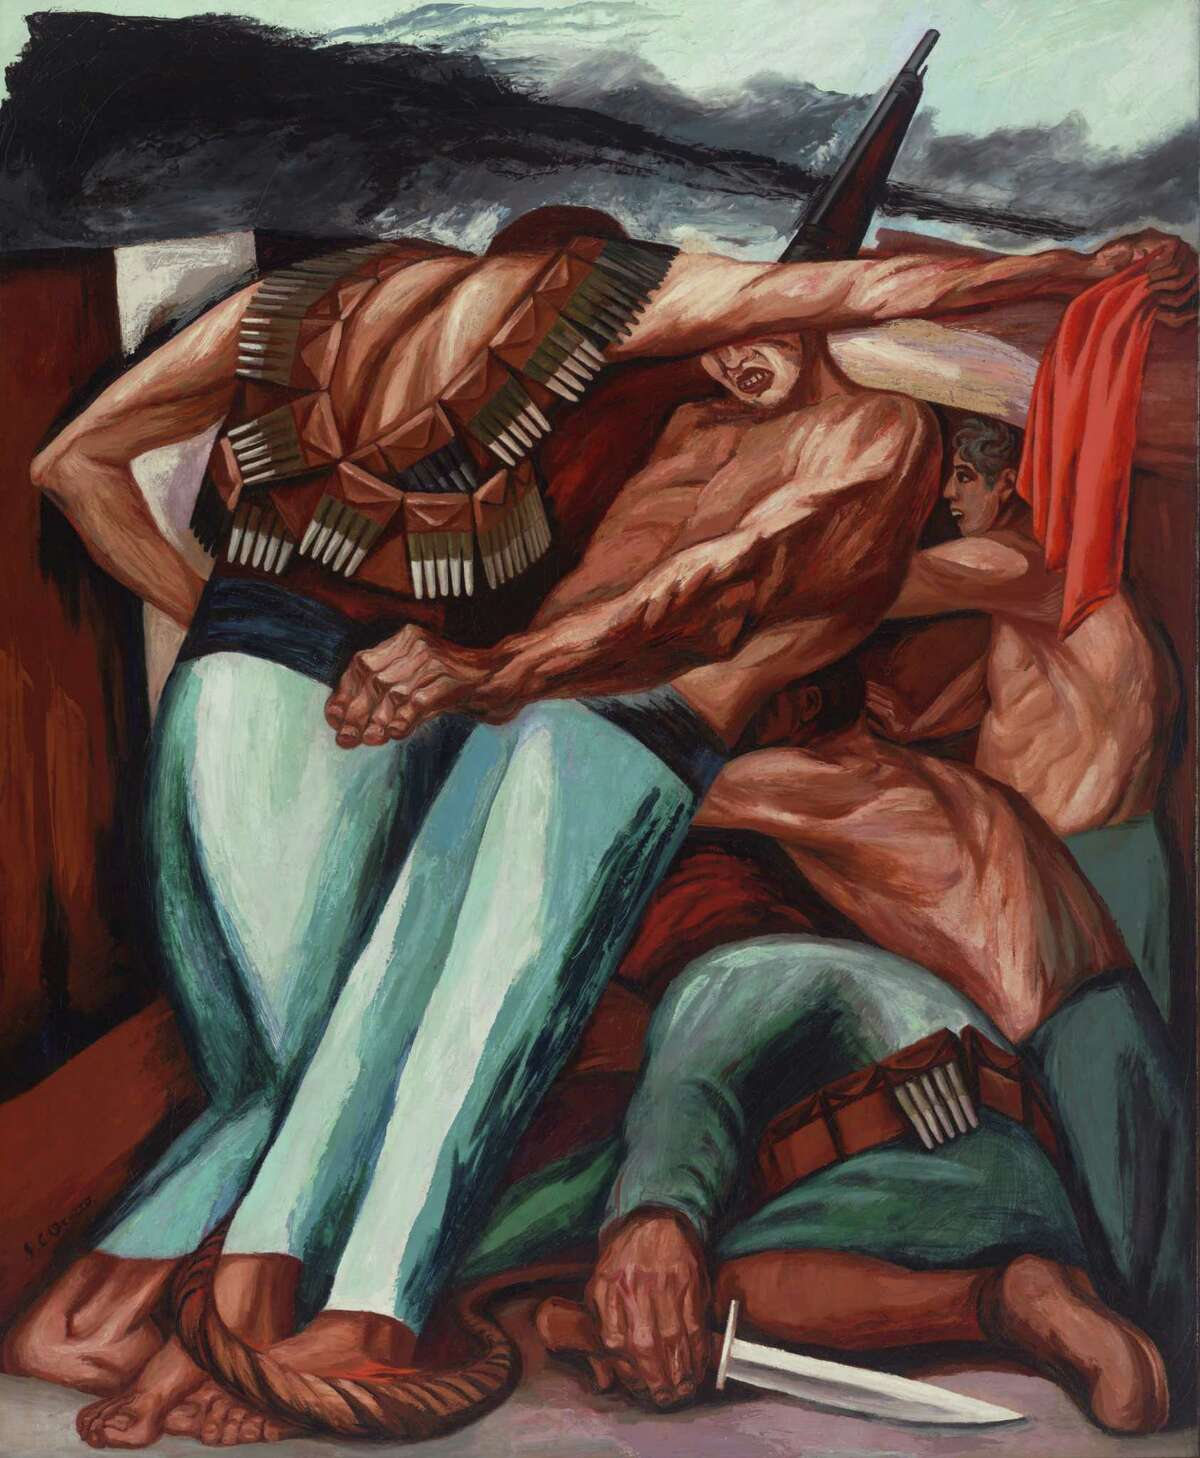 """José Clemente Orozco's 1931 painting """"Barricade"""" is among works on view through Oct. 1 in """"Paint the Revolution: Mexican Modern Art 1910-1950"""" at the Museum of Fine Arts, Houston."""